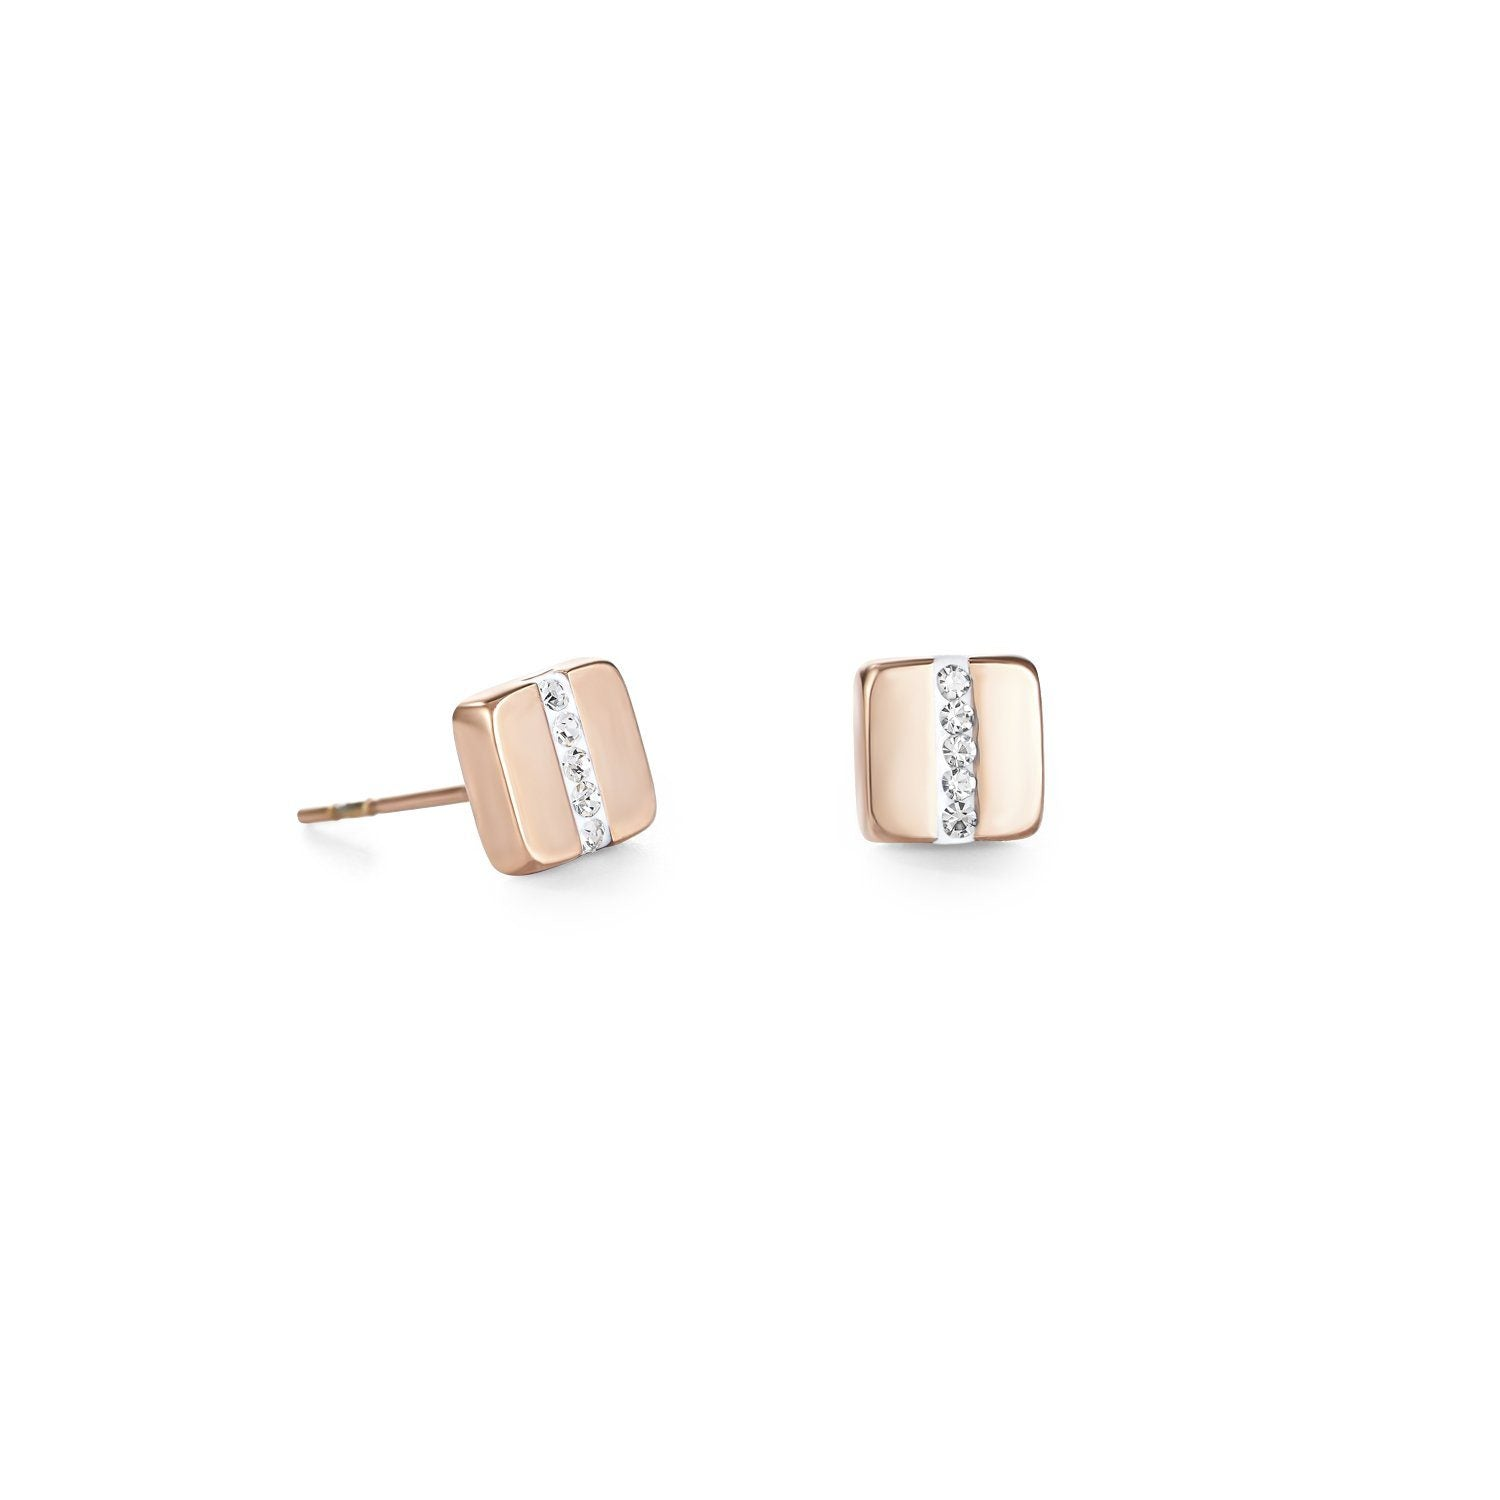 Pavé Crystal Gold Square Stud Earrings 0225/21-1800 Jewellery Coeur de Lion